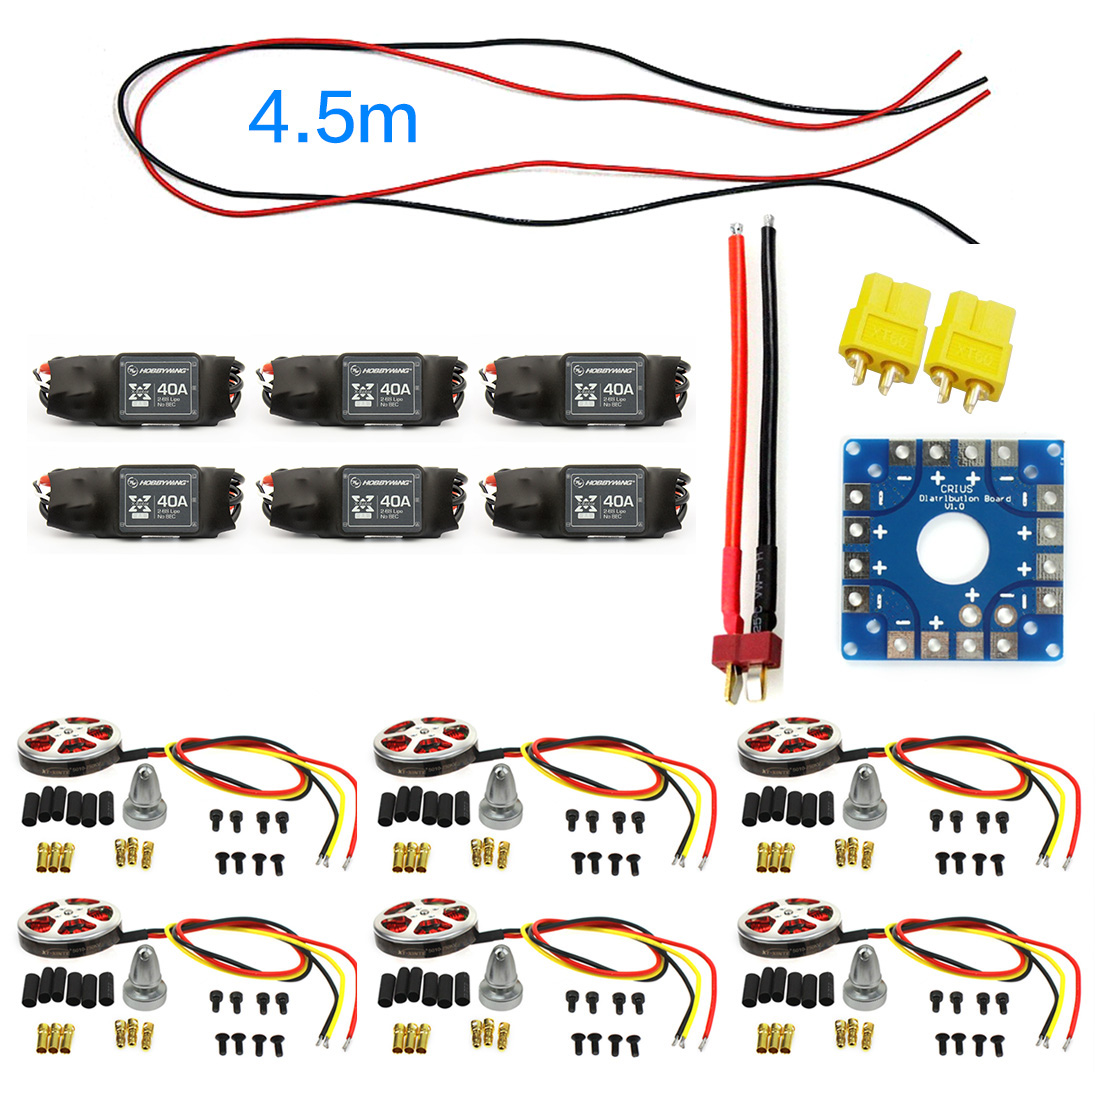 F04997-E JMT Assembled Kit : 40A ESC Controller 750KV Motor Connection  Board Wire for 6-Aix Drone Multi Rotor Hexacopter | MobileSpyGadgets